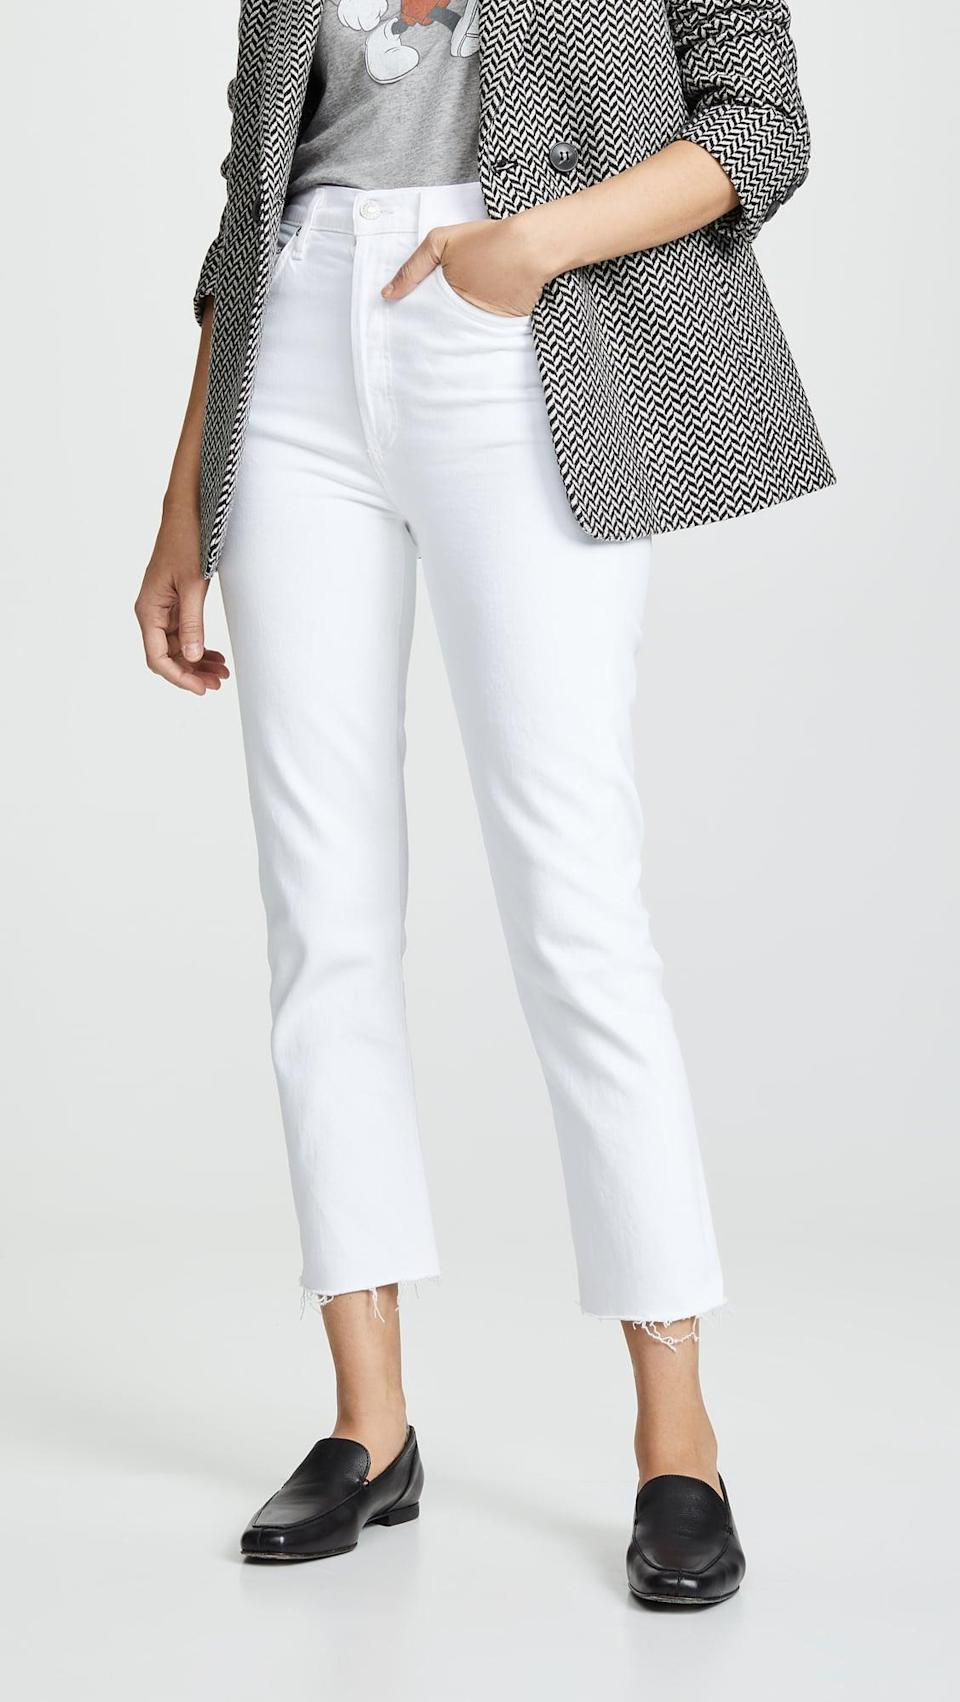 """<p>As far as flattering denim goes, Agolde continues to reign supreme in our book. The <span>Agolde Hi Rise Straight Riley Crop Jeans</span> ($178) are less rigid and have some give. """"These are hands down the best white jeans . . . Just thick enough where none of the skin imperfections stand out, like with so many other white jeans,"""" one customer wrote.</p>"""